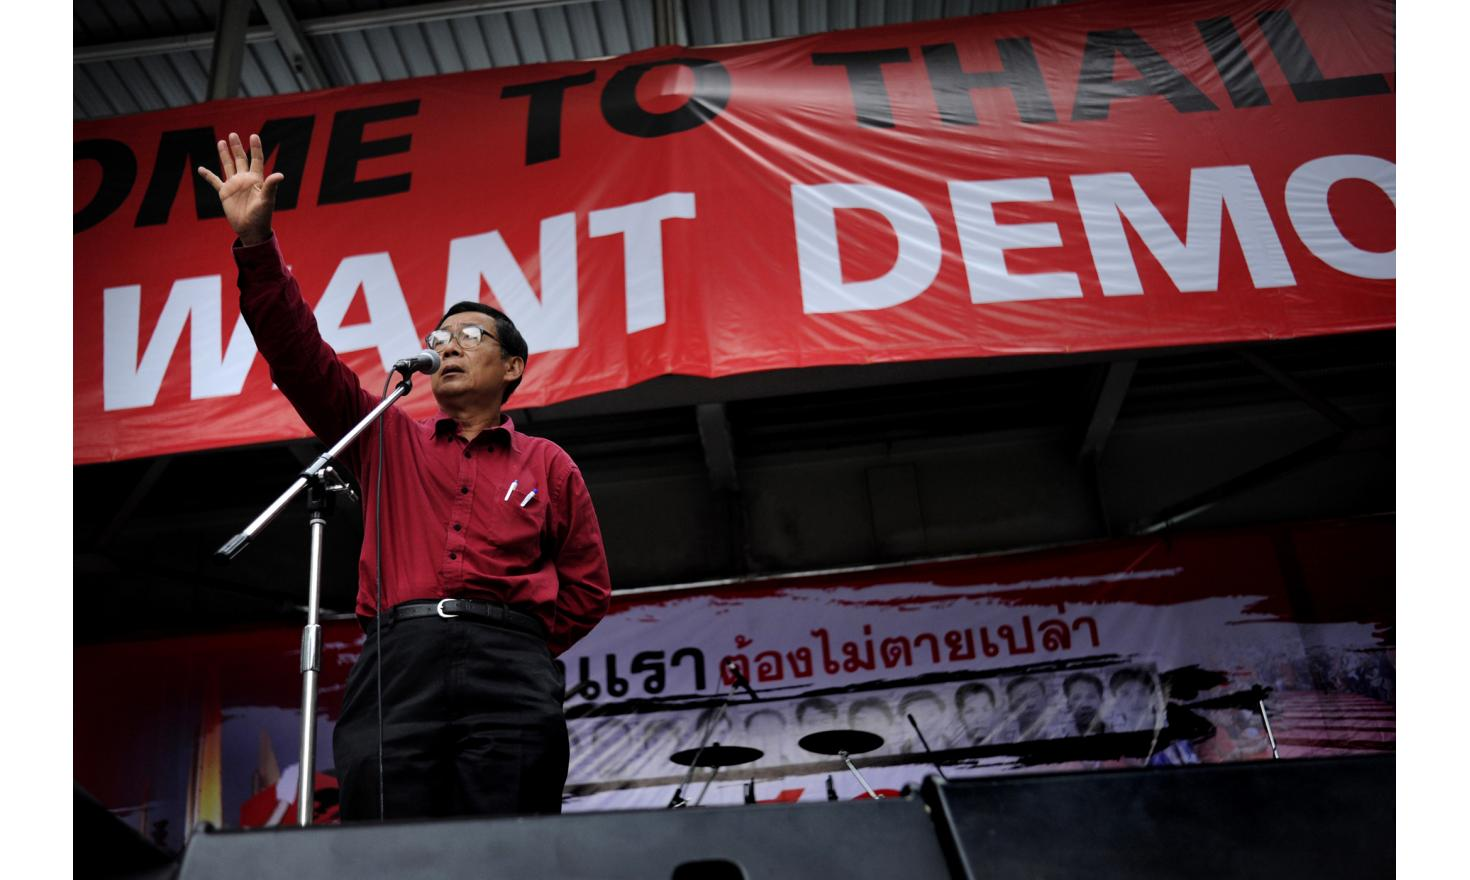 Doctor Weng one of the Red Leaders speaks to his crowd in Rajpasong intersection, occupied by the reds for over a month now, Center of Bangkok Thailand